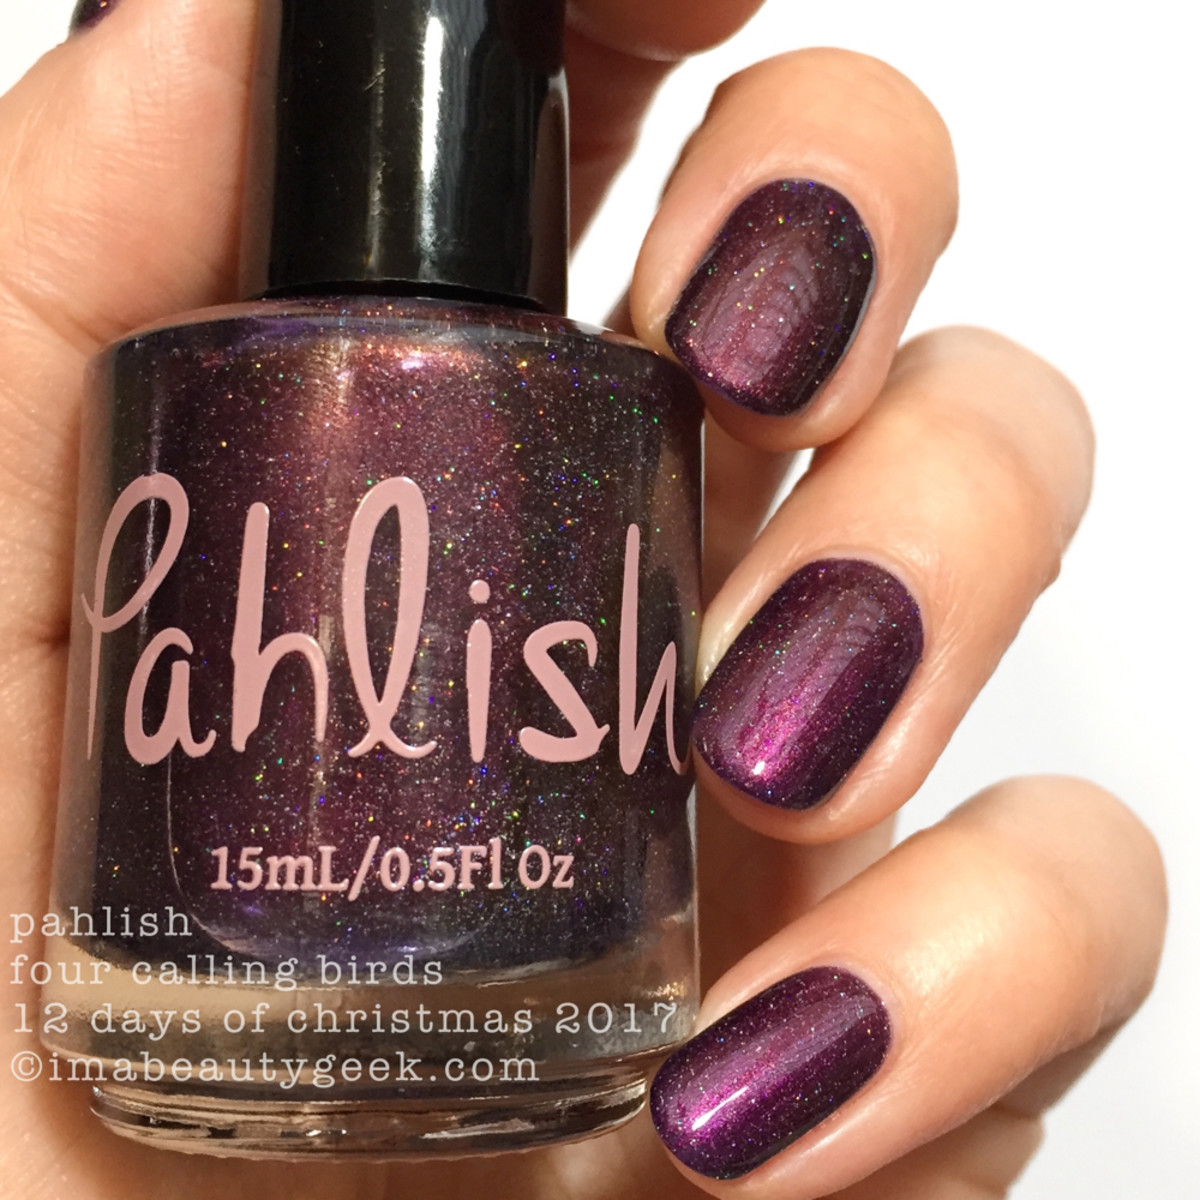 Pahlish Four Calling Birds - Pahlish 12 Days of Christmas 2017 2